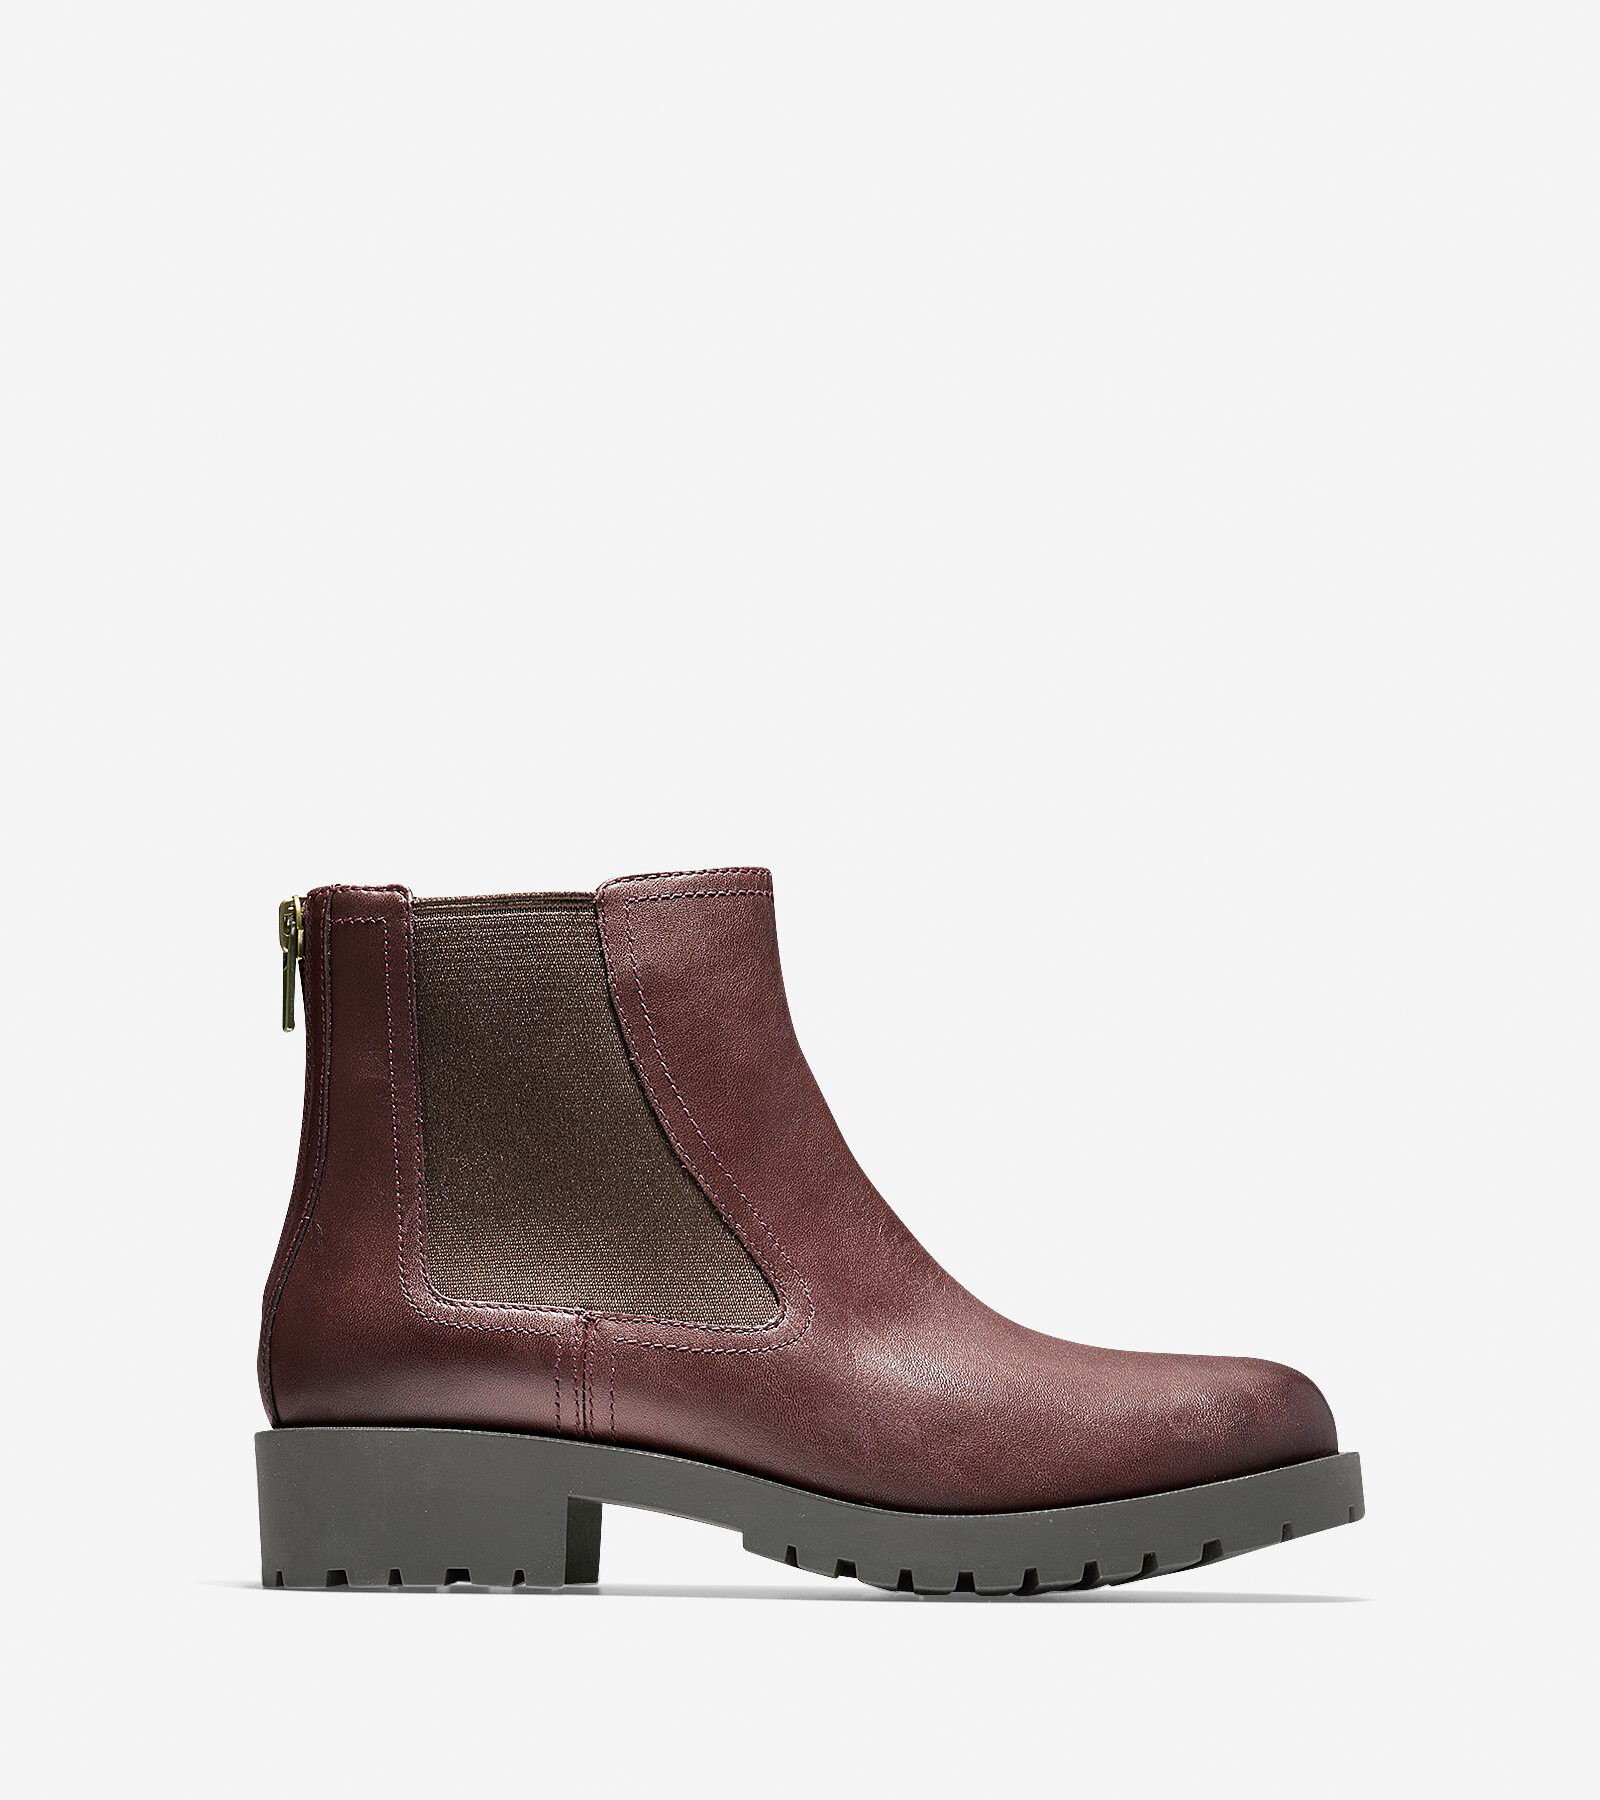 Cole Haan Abbot Beige - Chaussures Low boots Femme